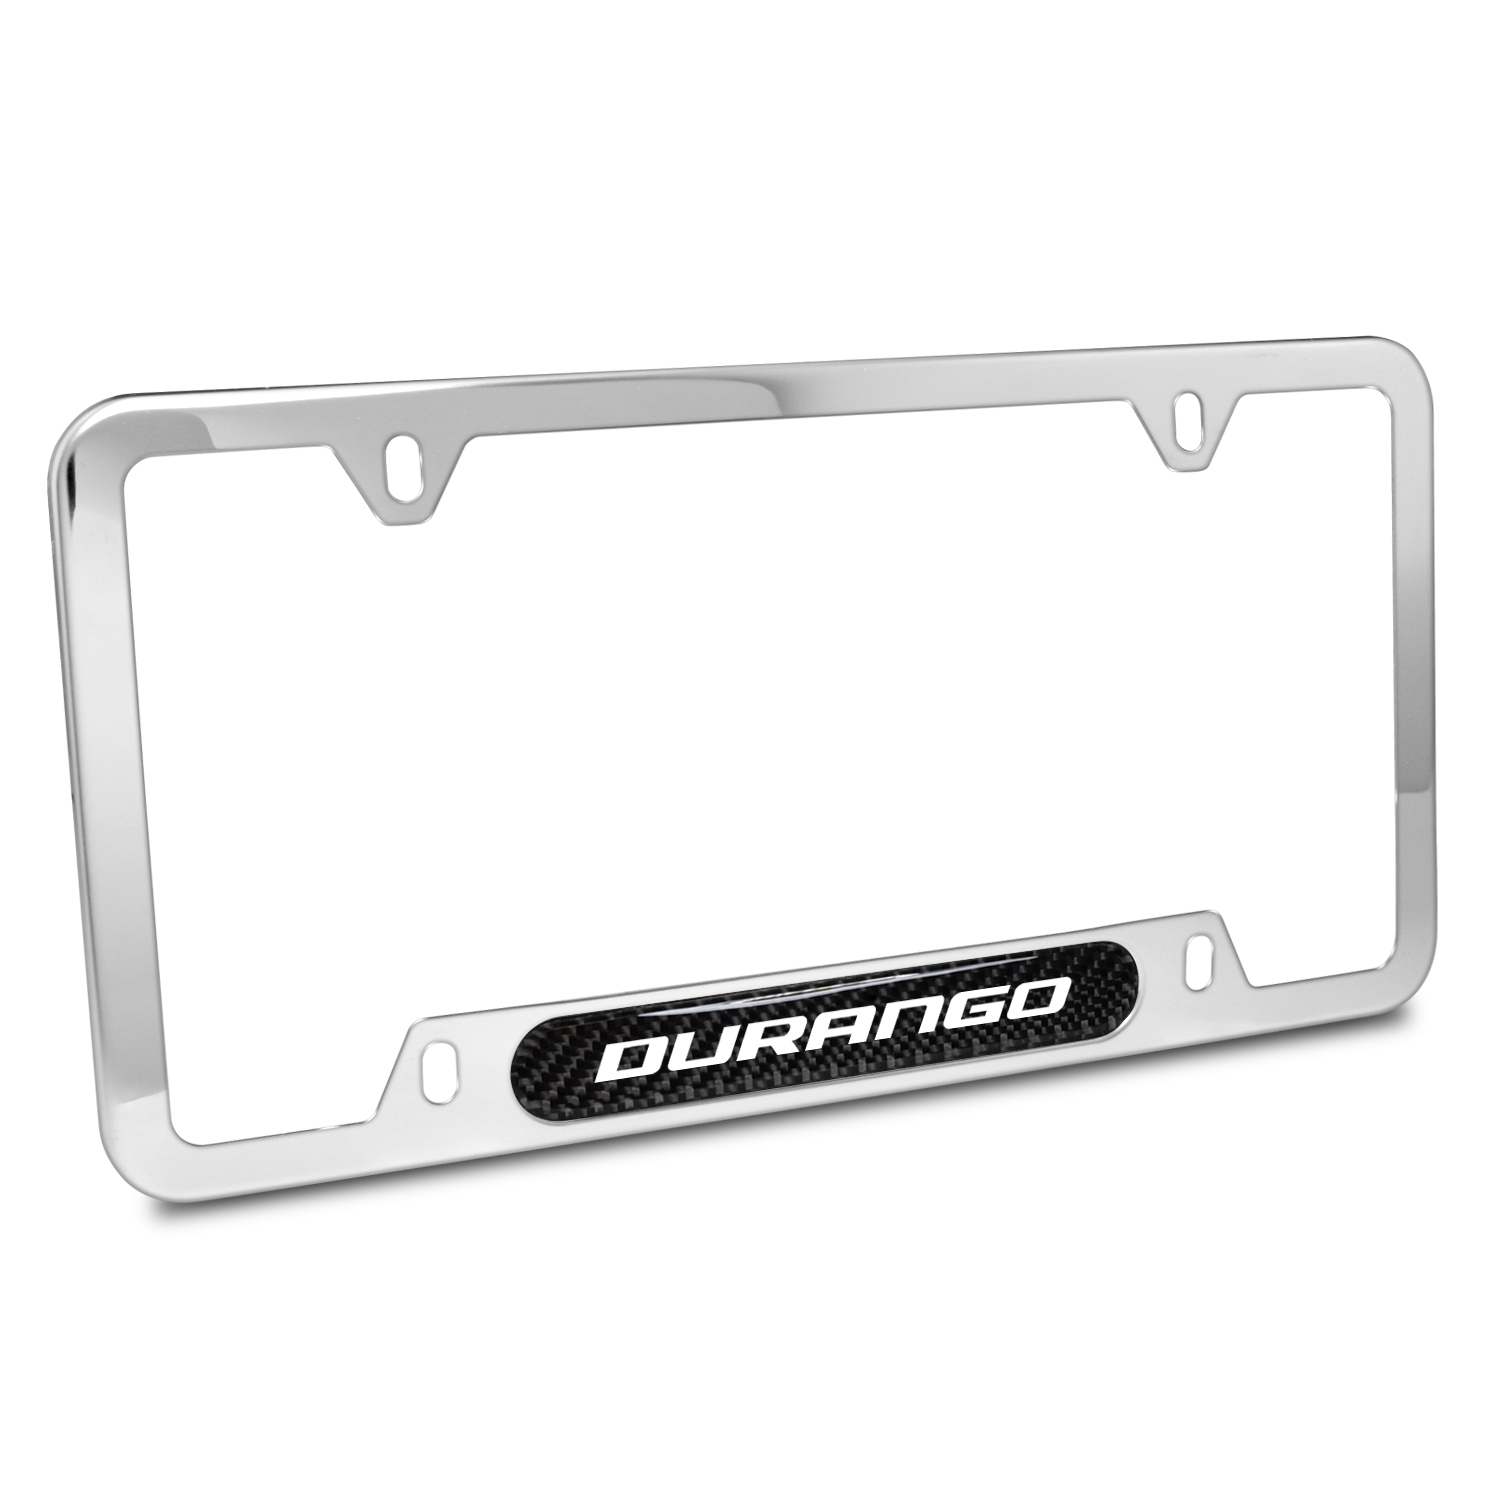 Dodge Durango Real Carbon Fiber Nameplate Chrome Stainless Steel License Plate Frame